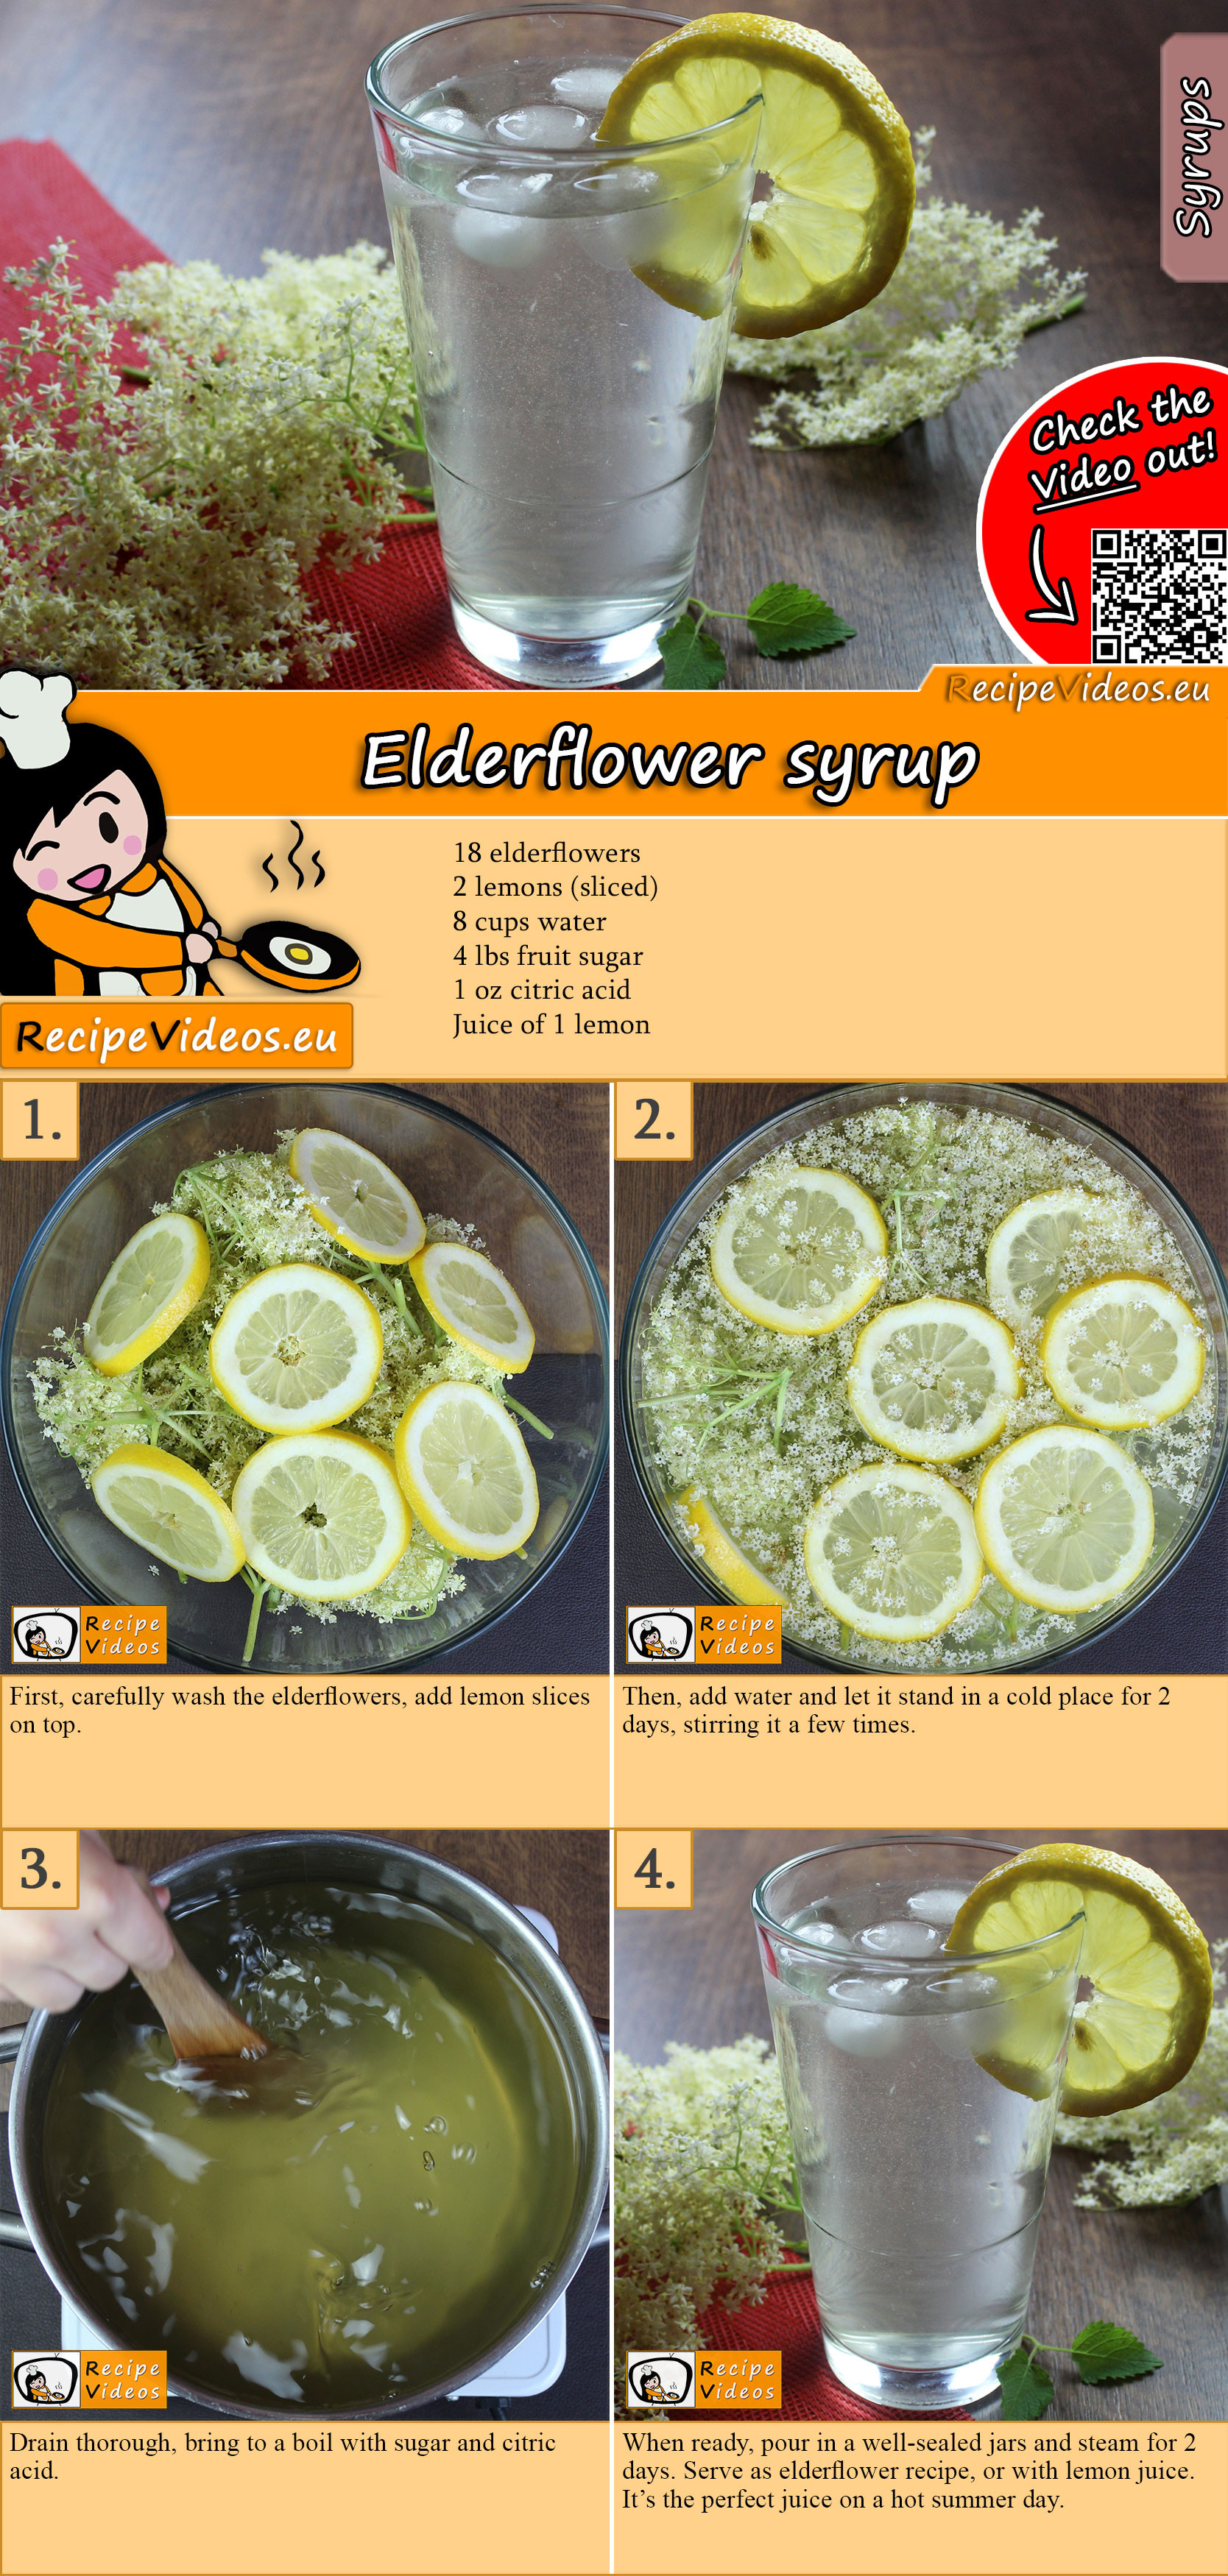 Elderflower syrup recipe with video